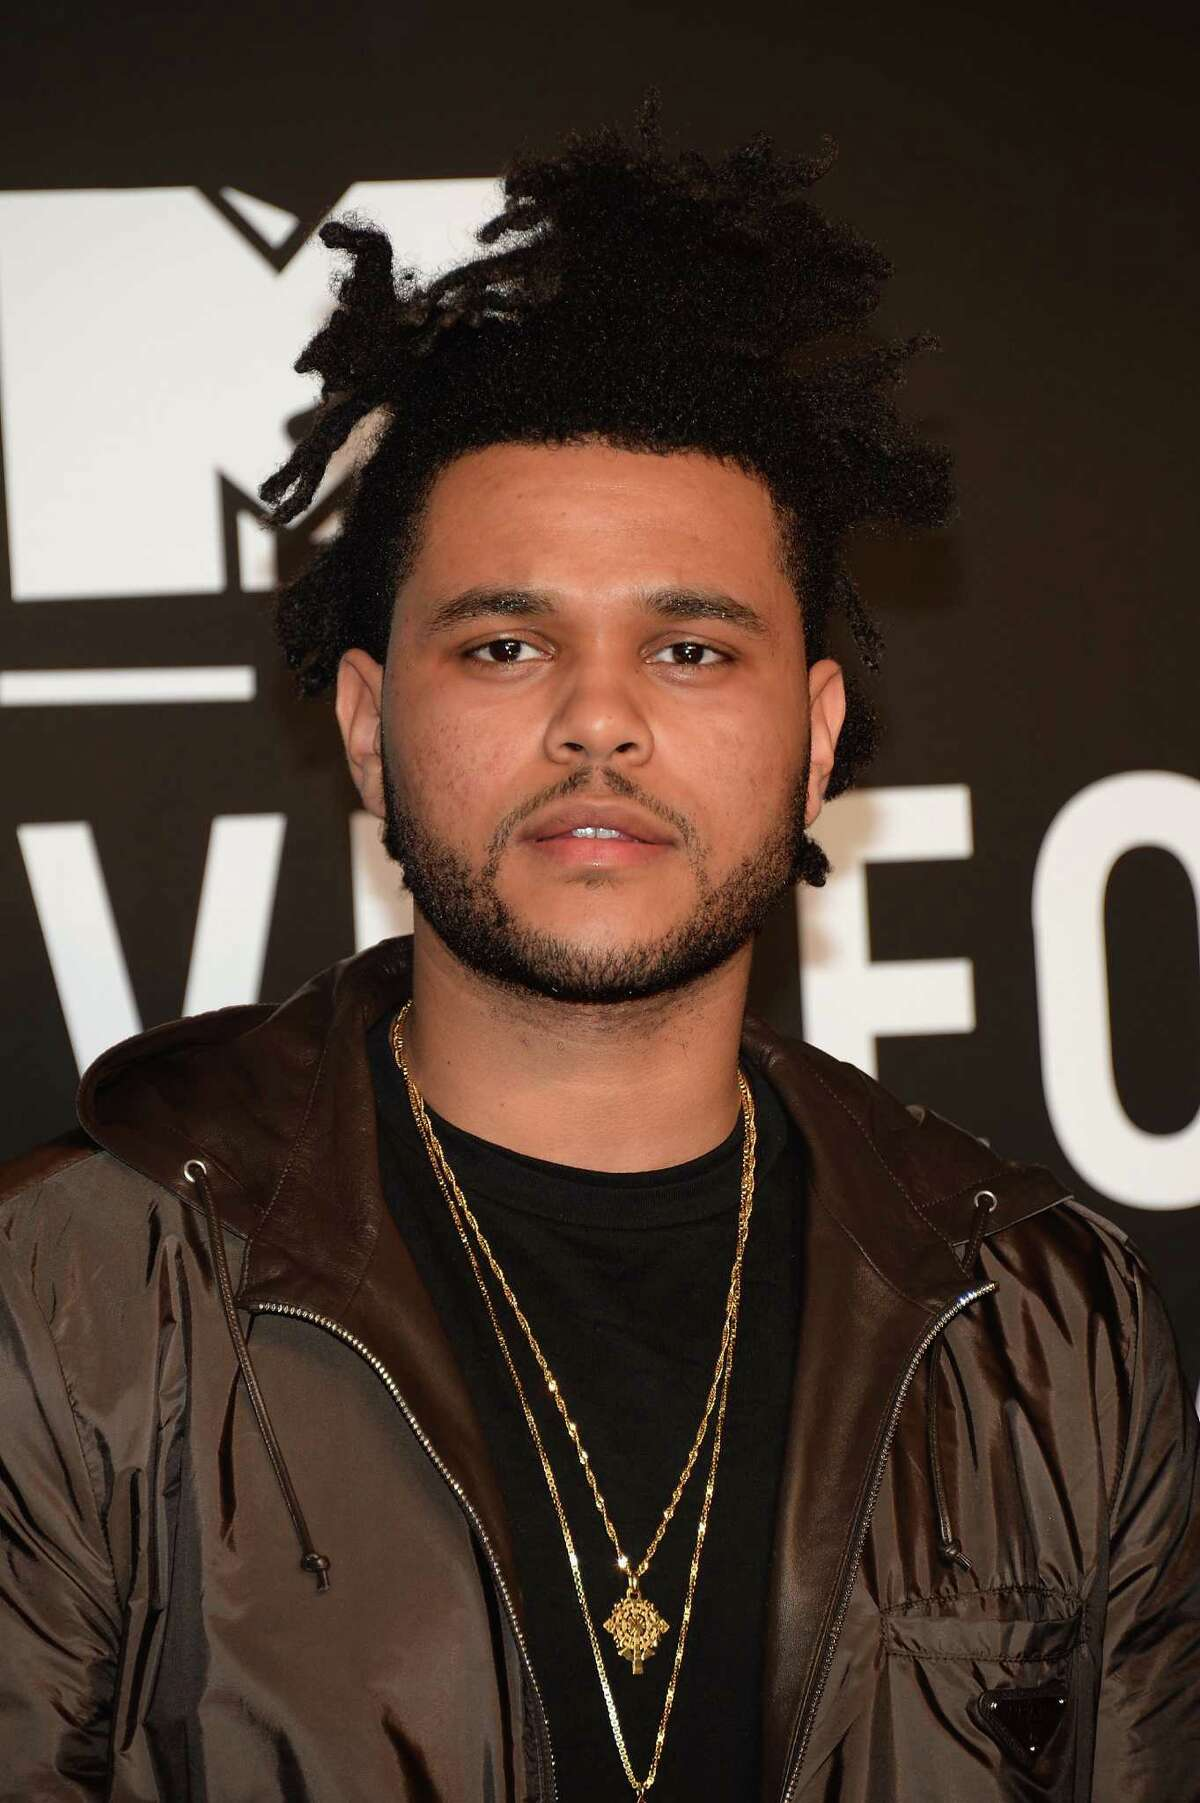 Dec. 13 The Weeknd: R&B and pop star grooves at Toyota Center.